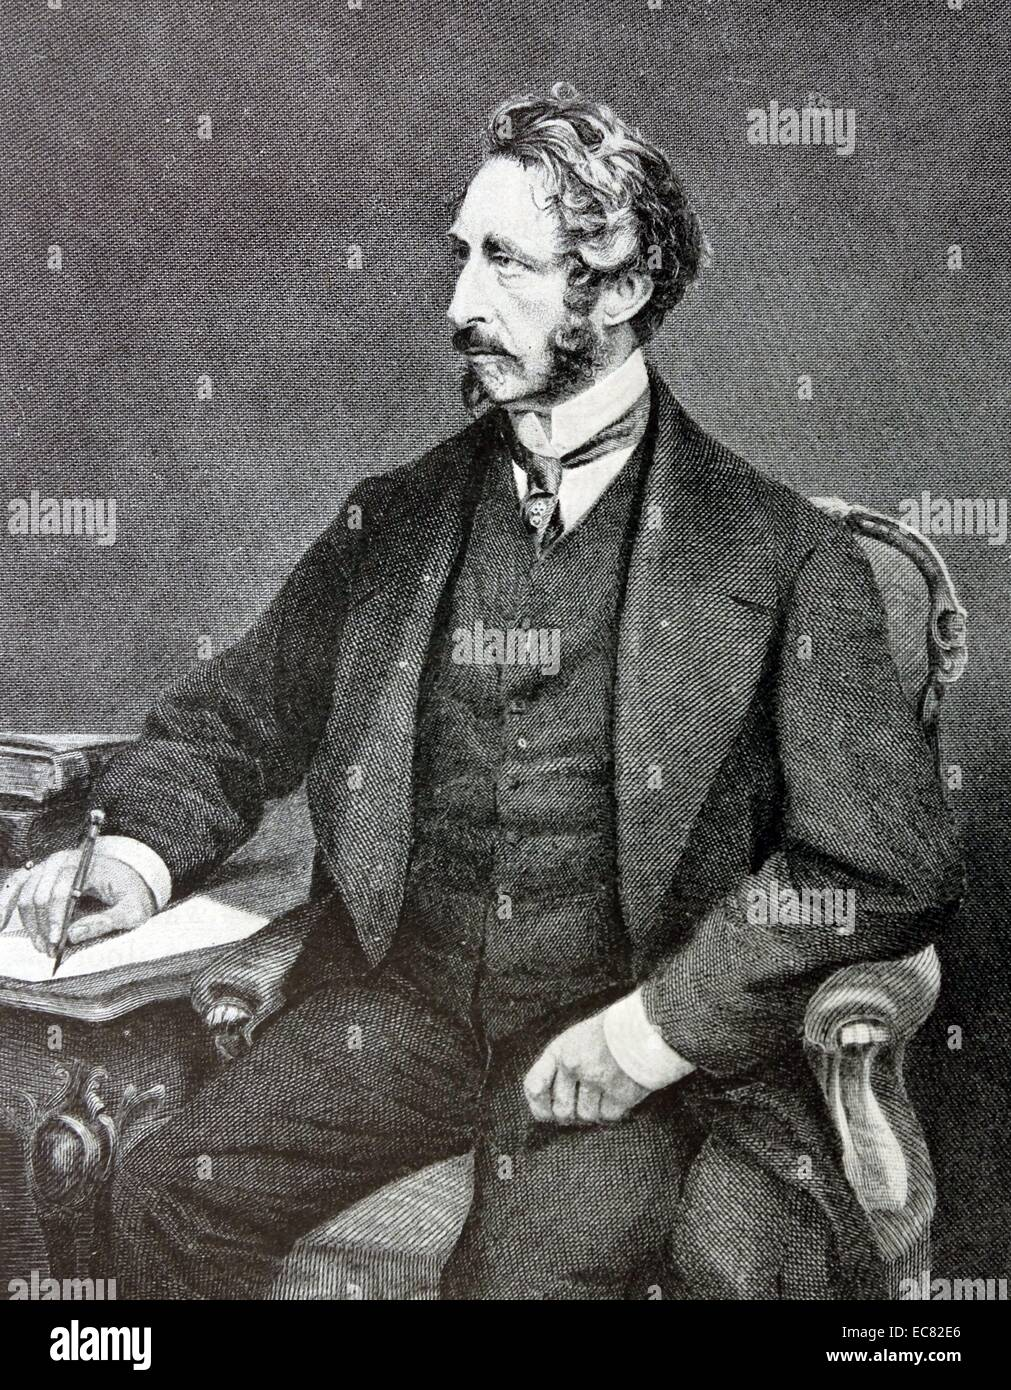 Engraving of Edward Bulwer-Lytton (1831-1891) English statesman, poet and Viceroy of India. Dated 1878 Stock Photo